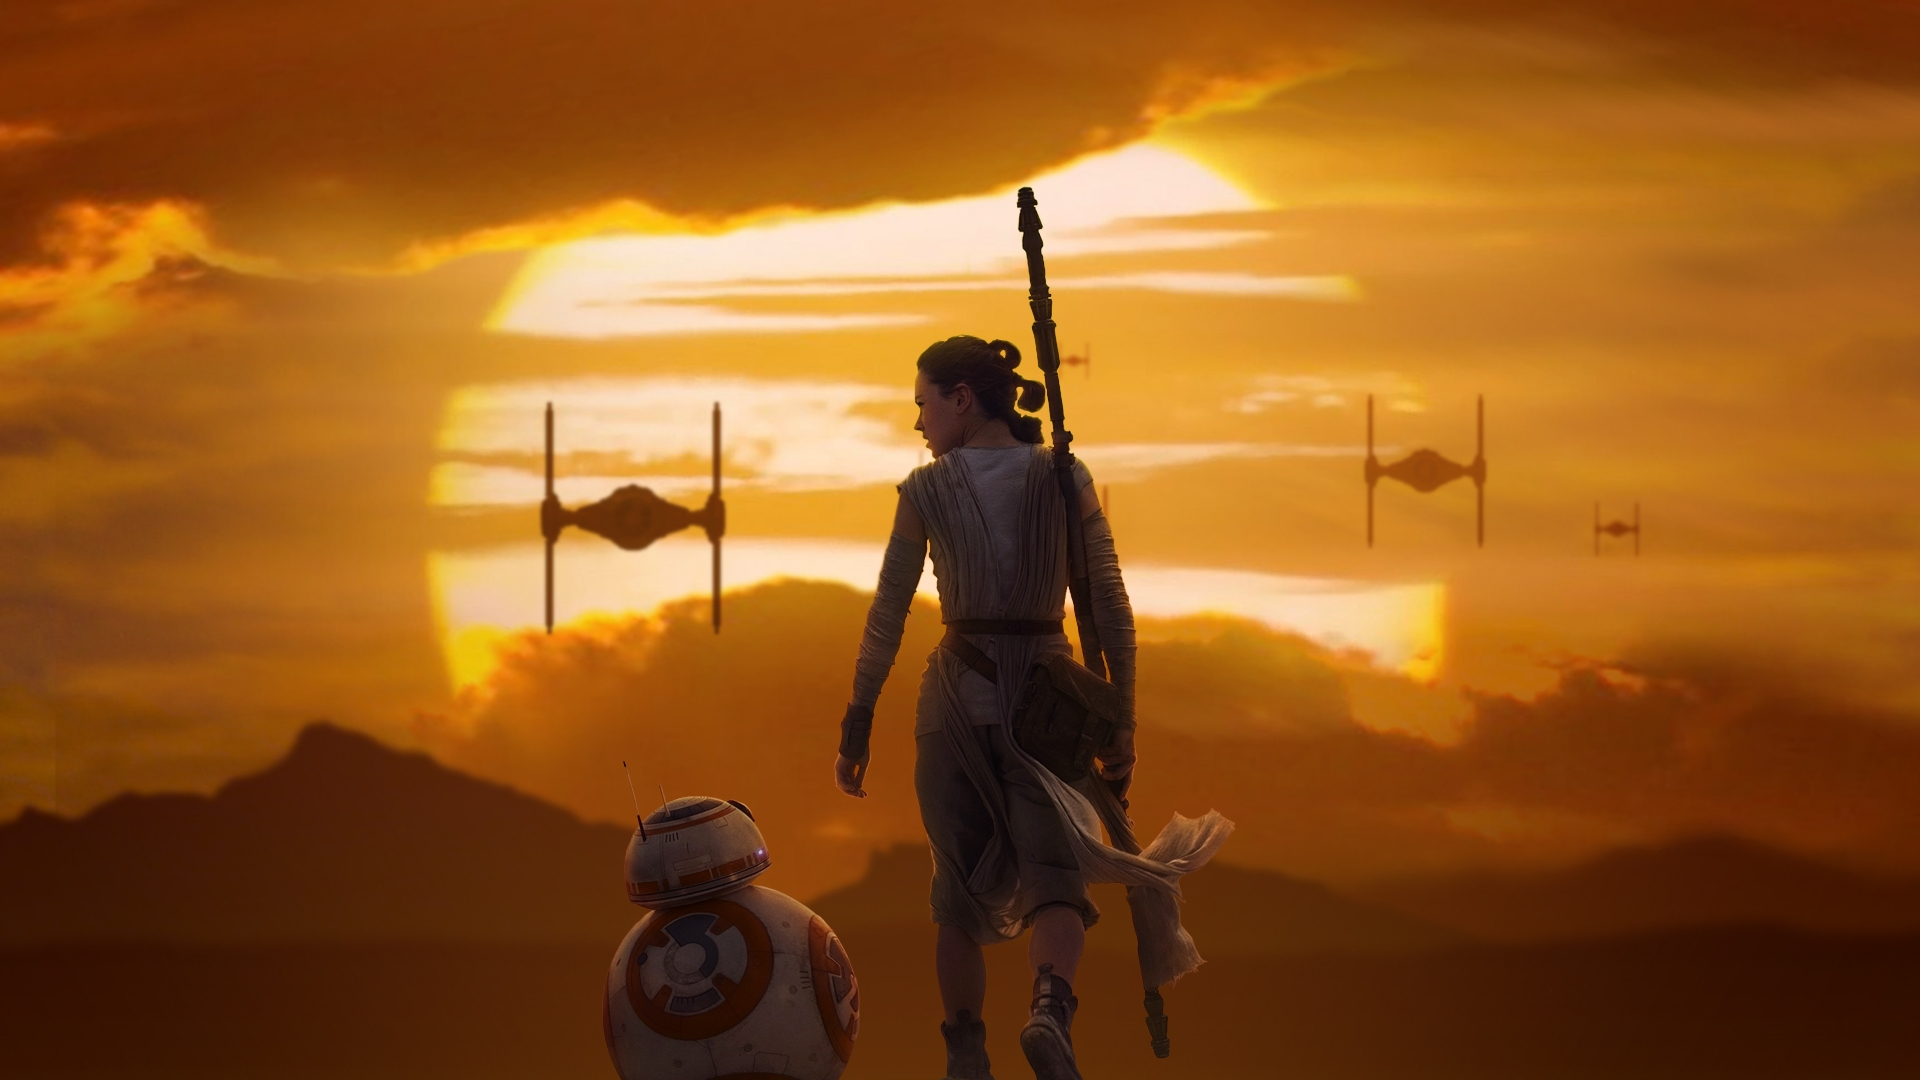 Rey Women Of Star Wars Wallpaper 39983126 Fanpop